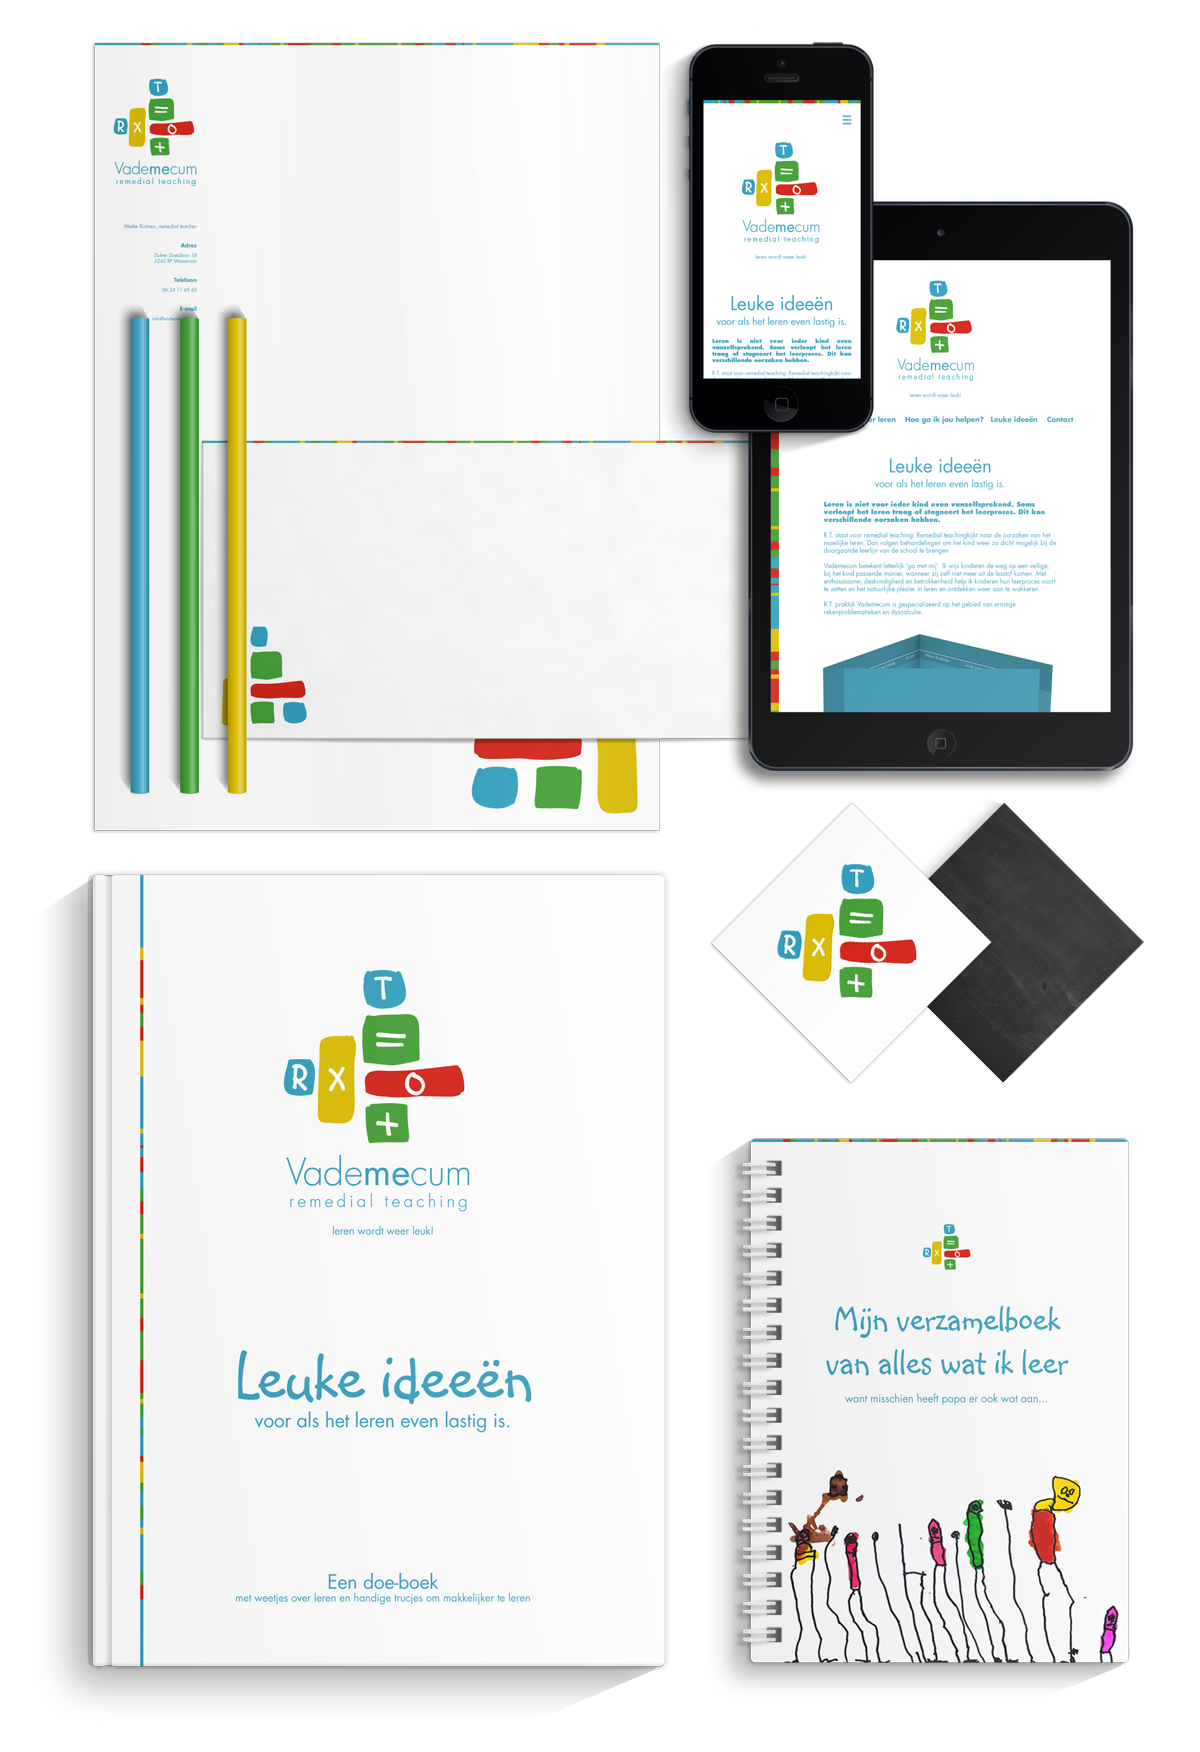 Vademecum remedial teaching - Identiteit Too Many Words | Infographics & identiteit te Utrecht